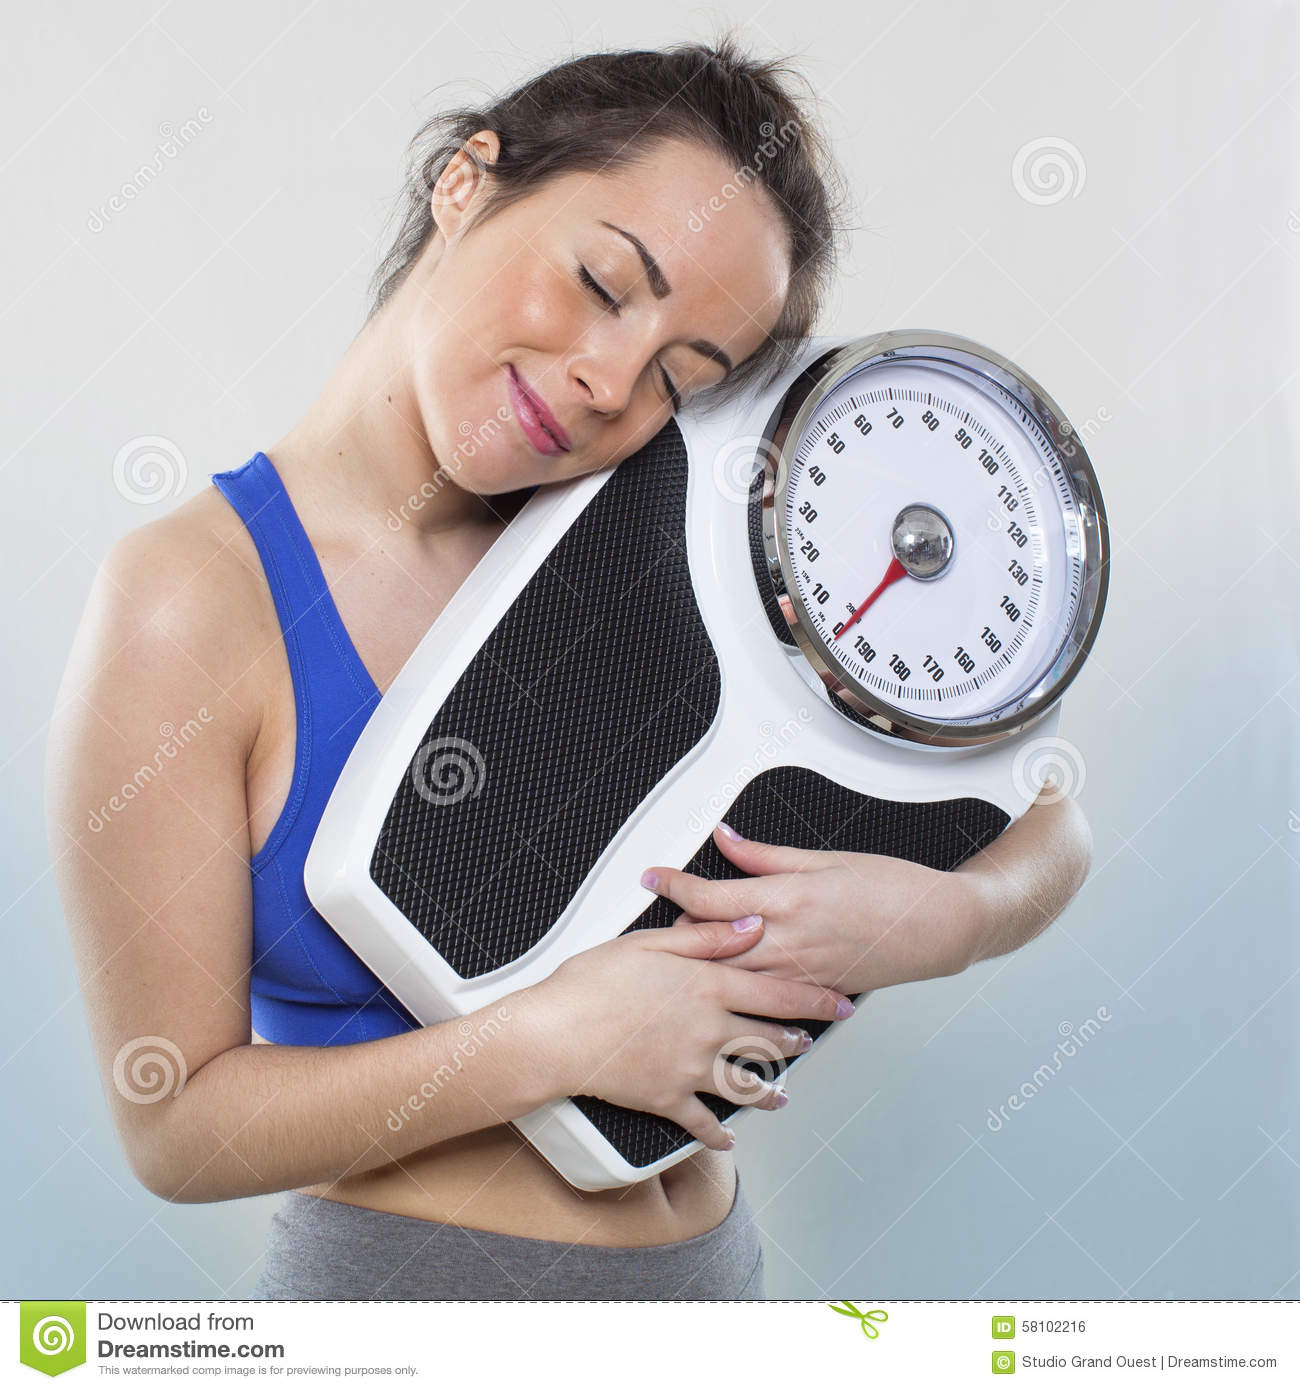 Smiling 20s Girl Taking Care Of Her Kilos Or Pounds With Her Wellness Best Friend